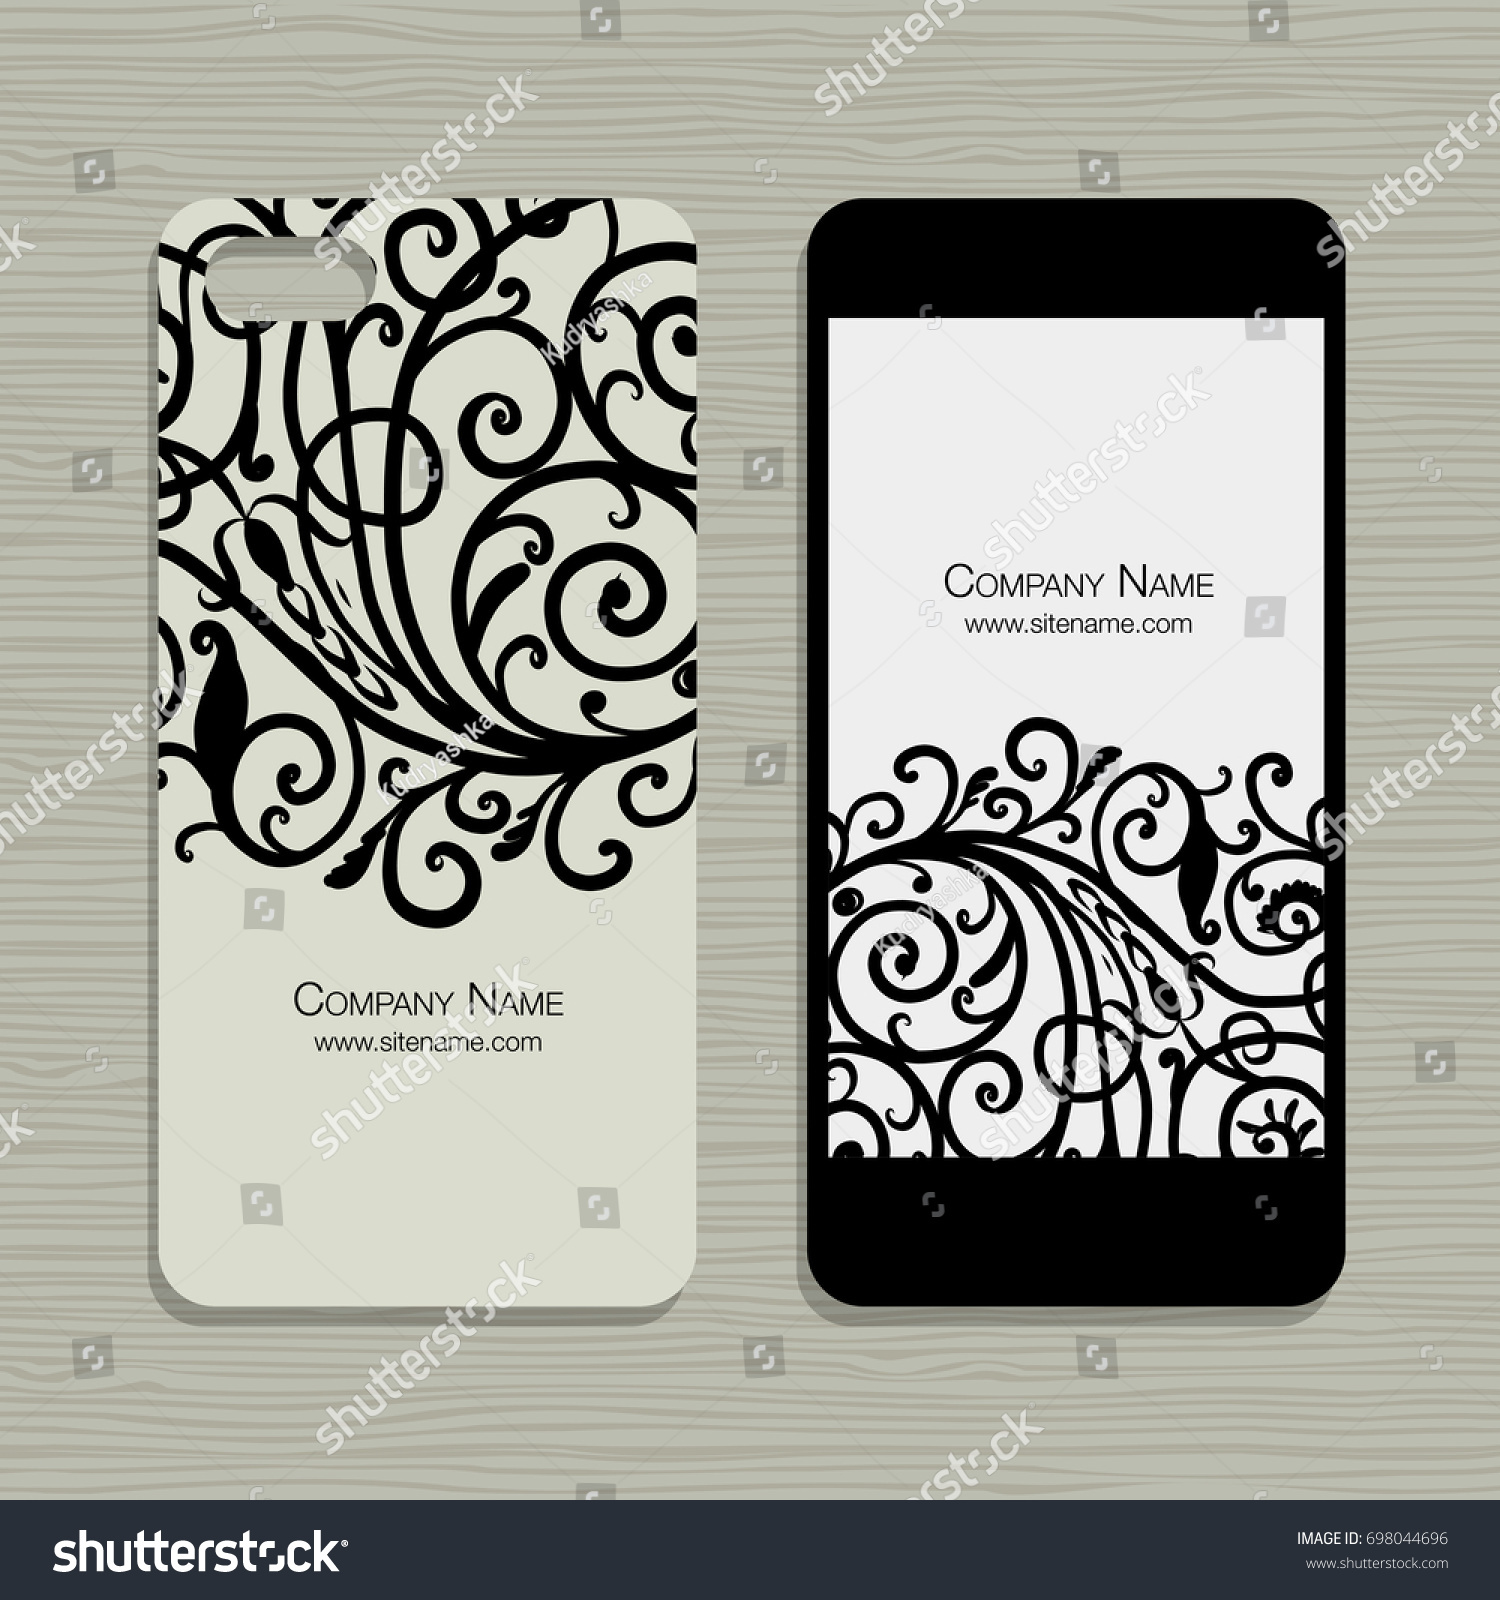 Mobile Phone Design Floral Background Stock Vector Royalty Free